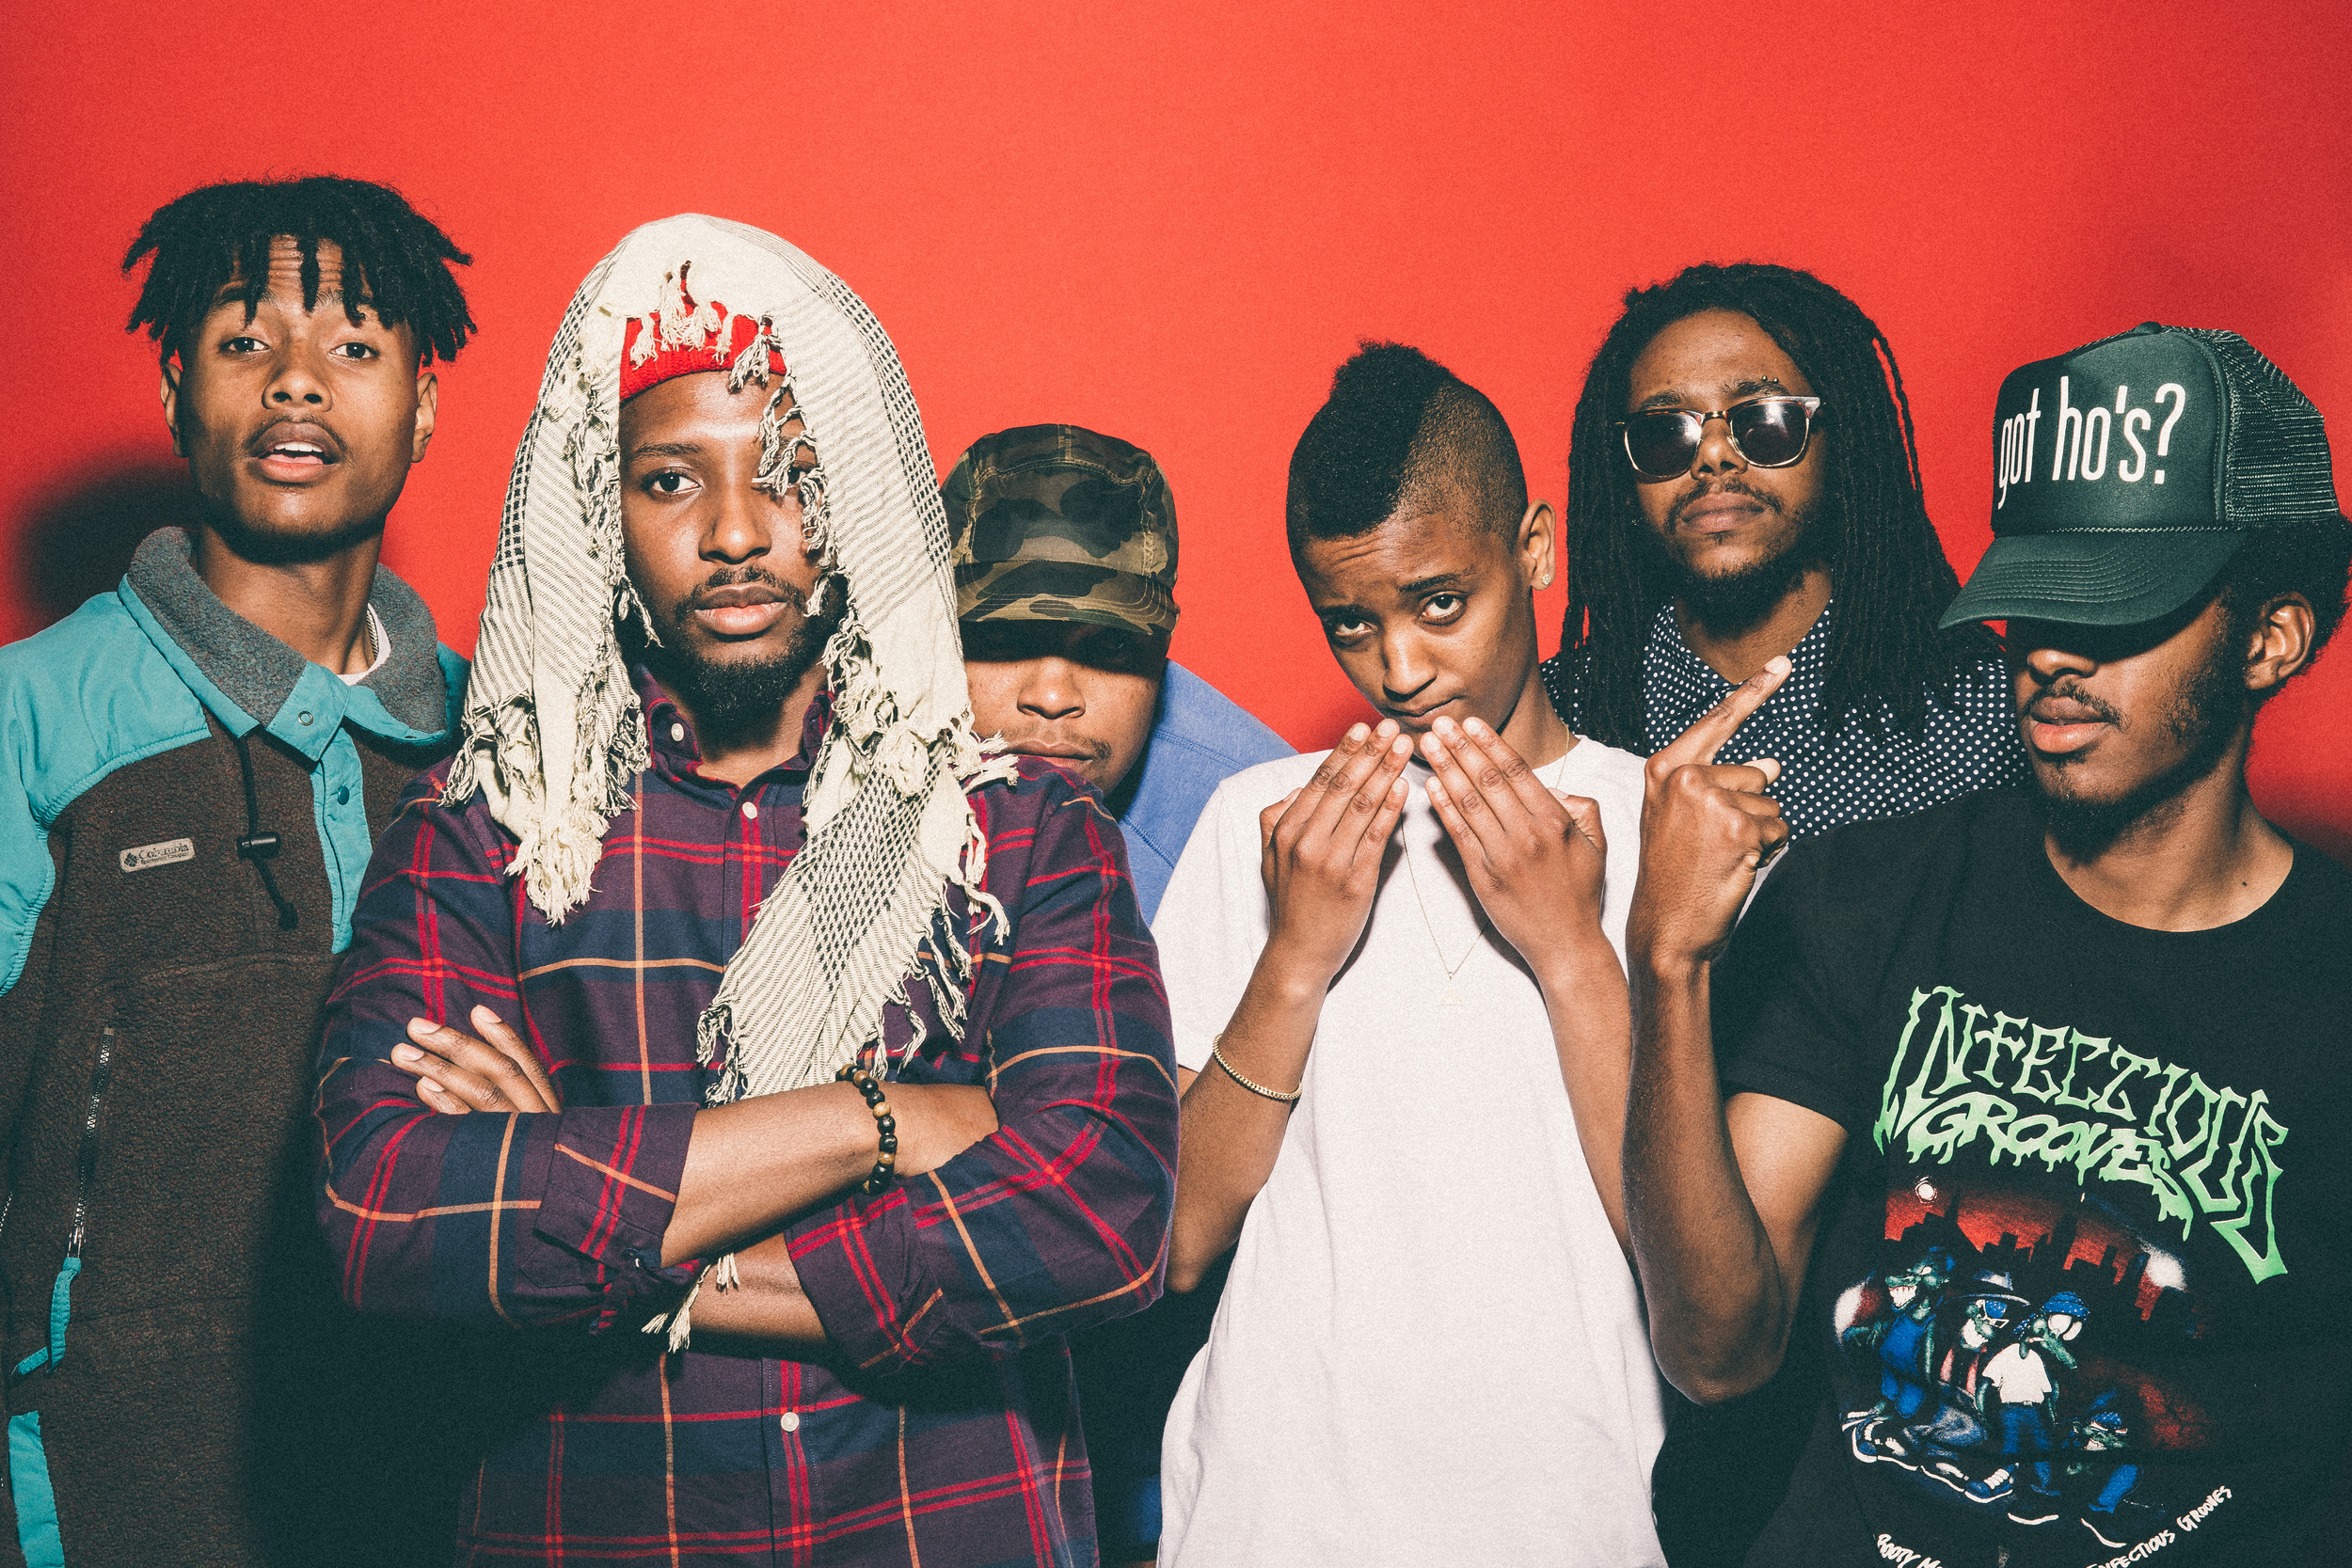 SOLD OUT! – THE INTERNET - THE EGO DEATH TOUR - NICKY DAVEY